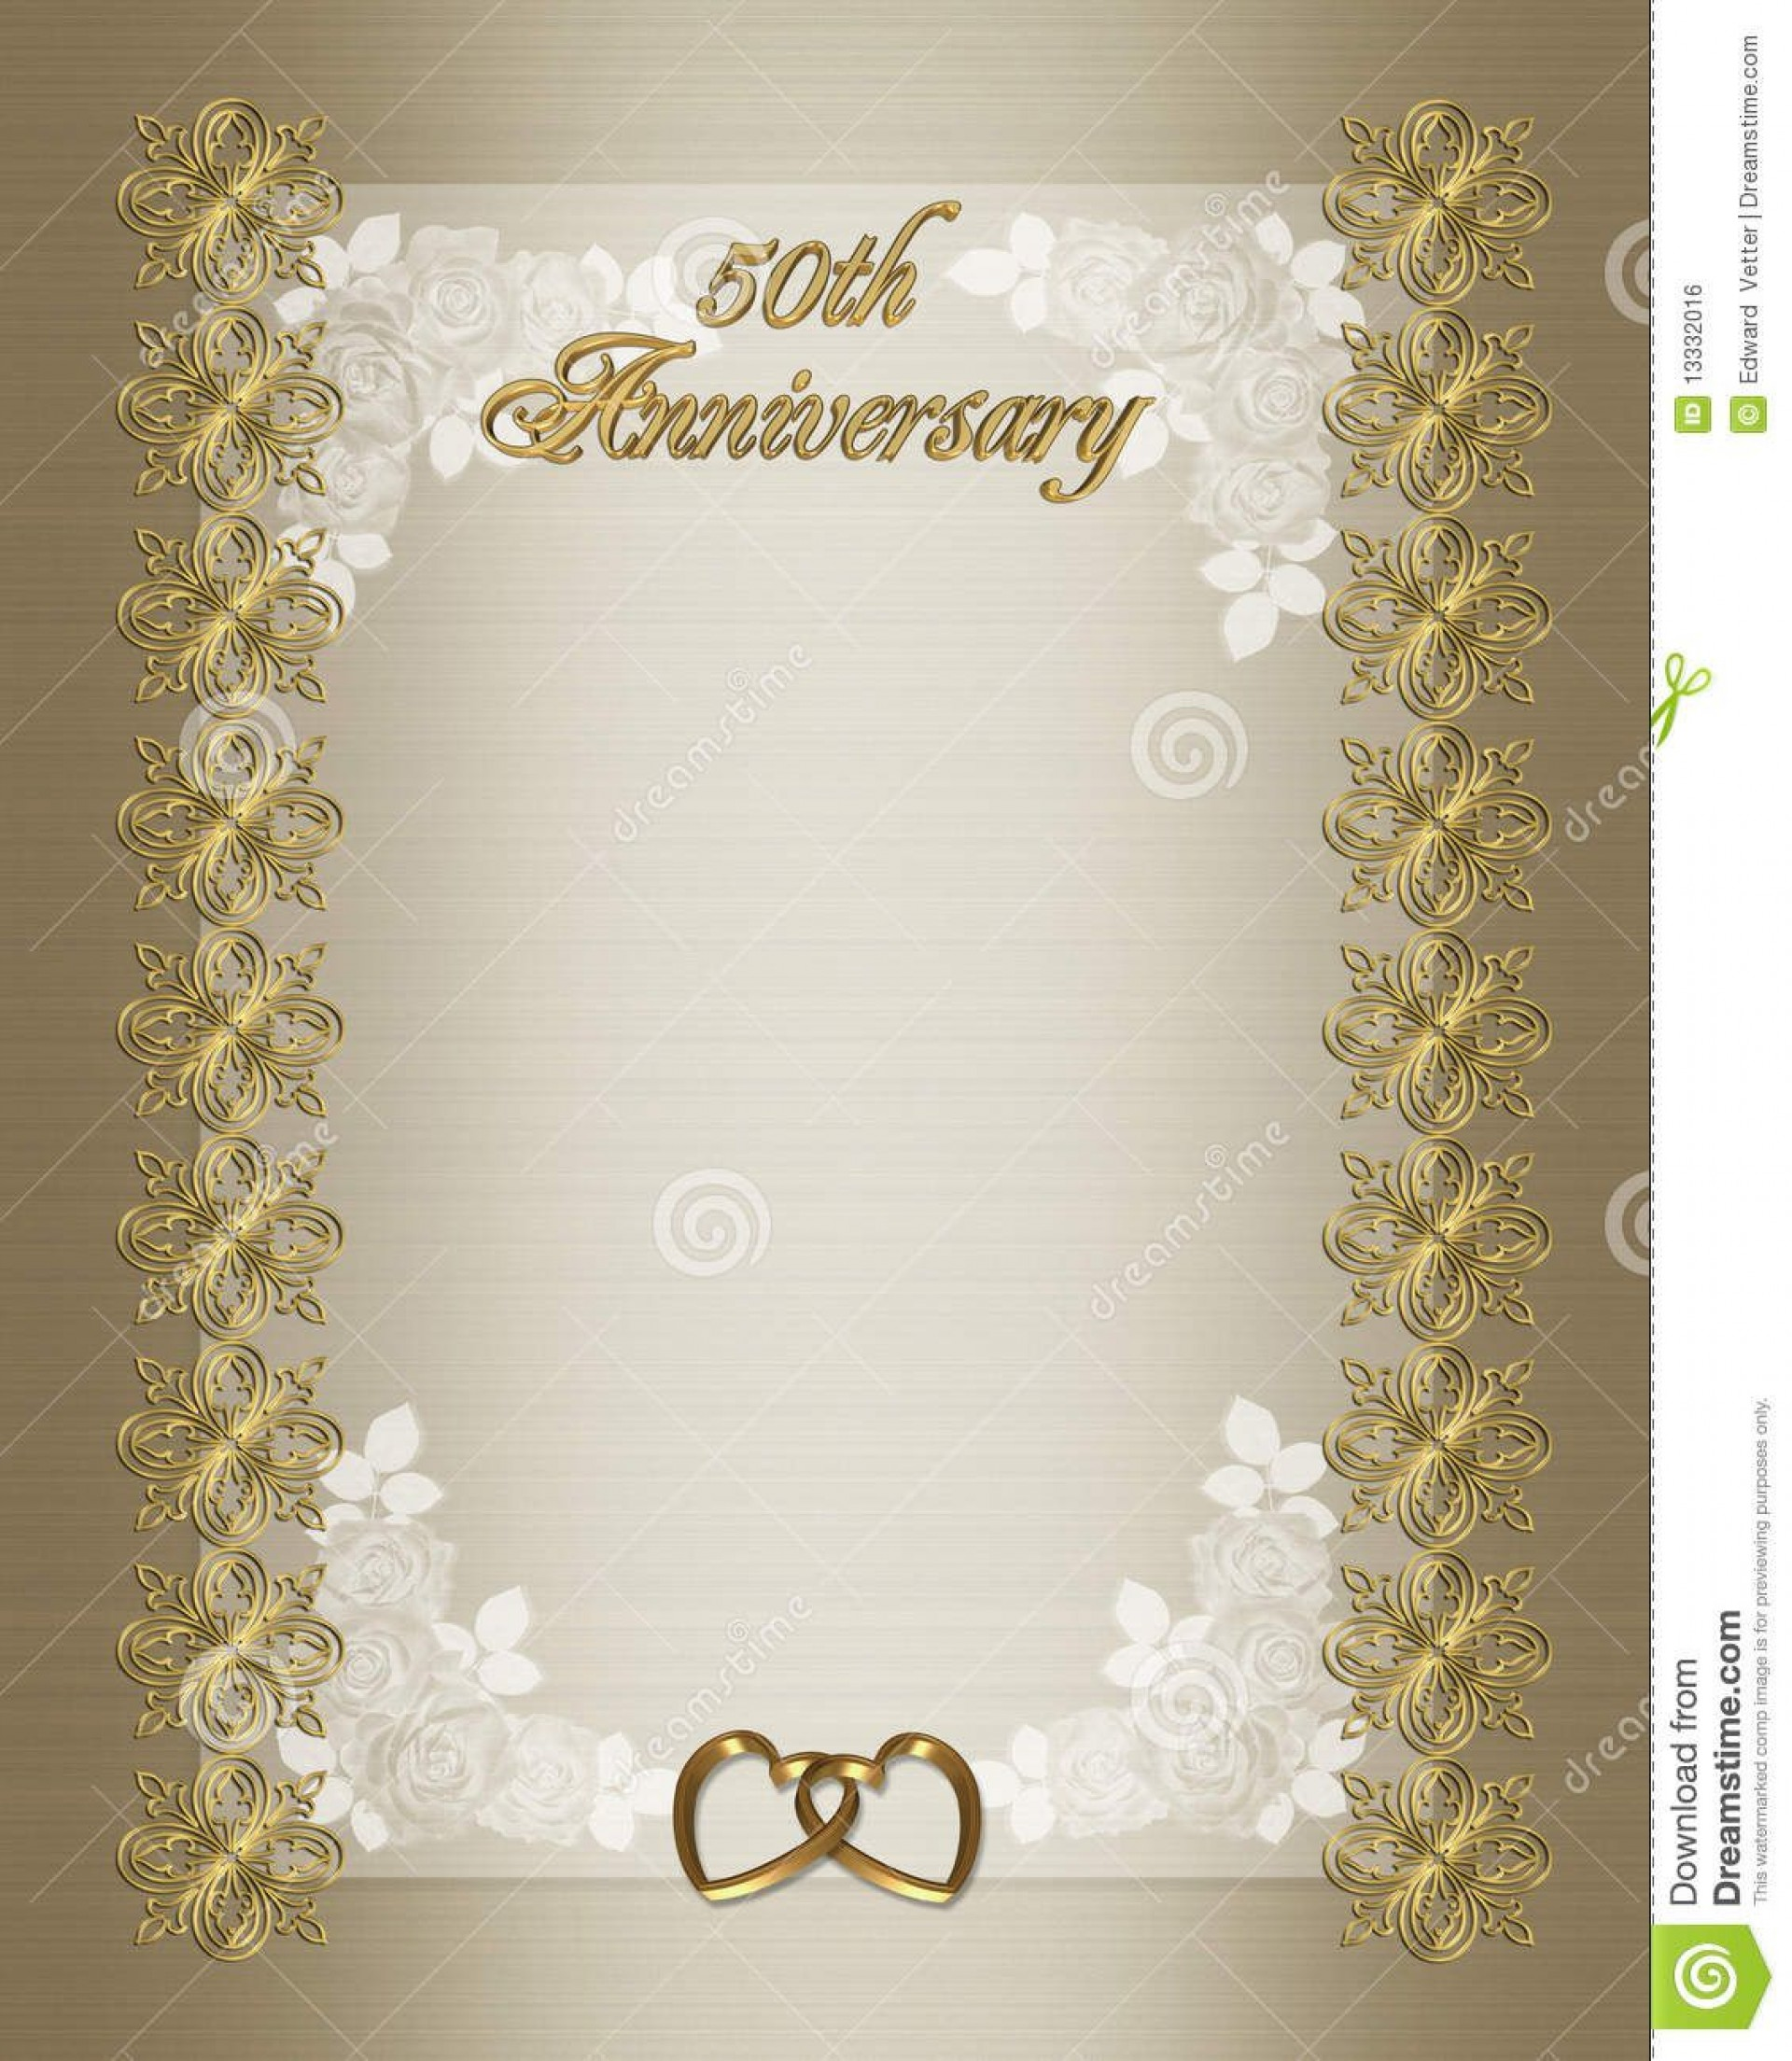 003 Fascinating Free 50th Anniversary Invitation Template For Word Picture 1920